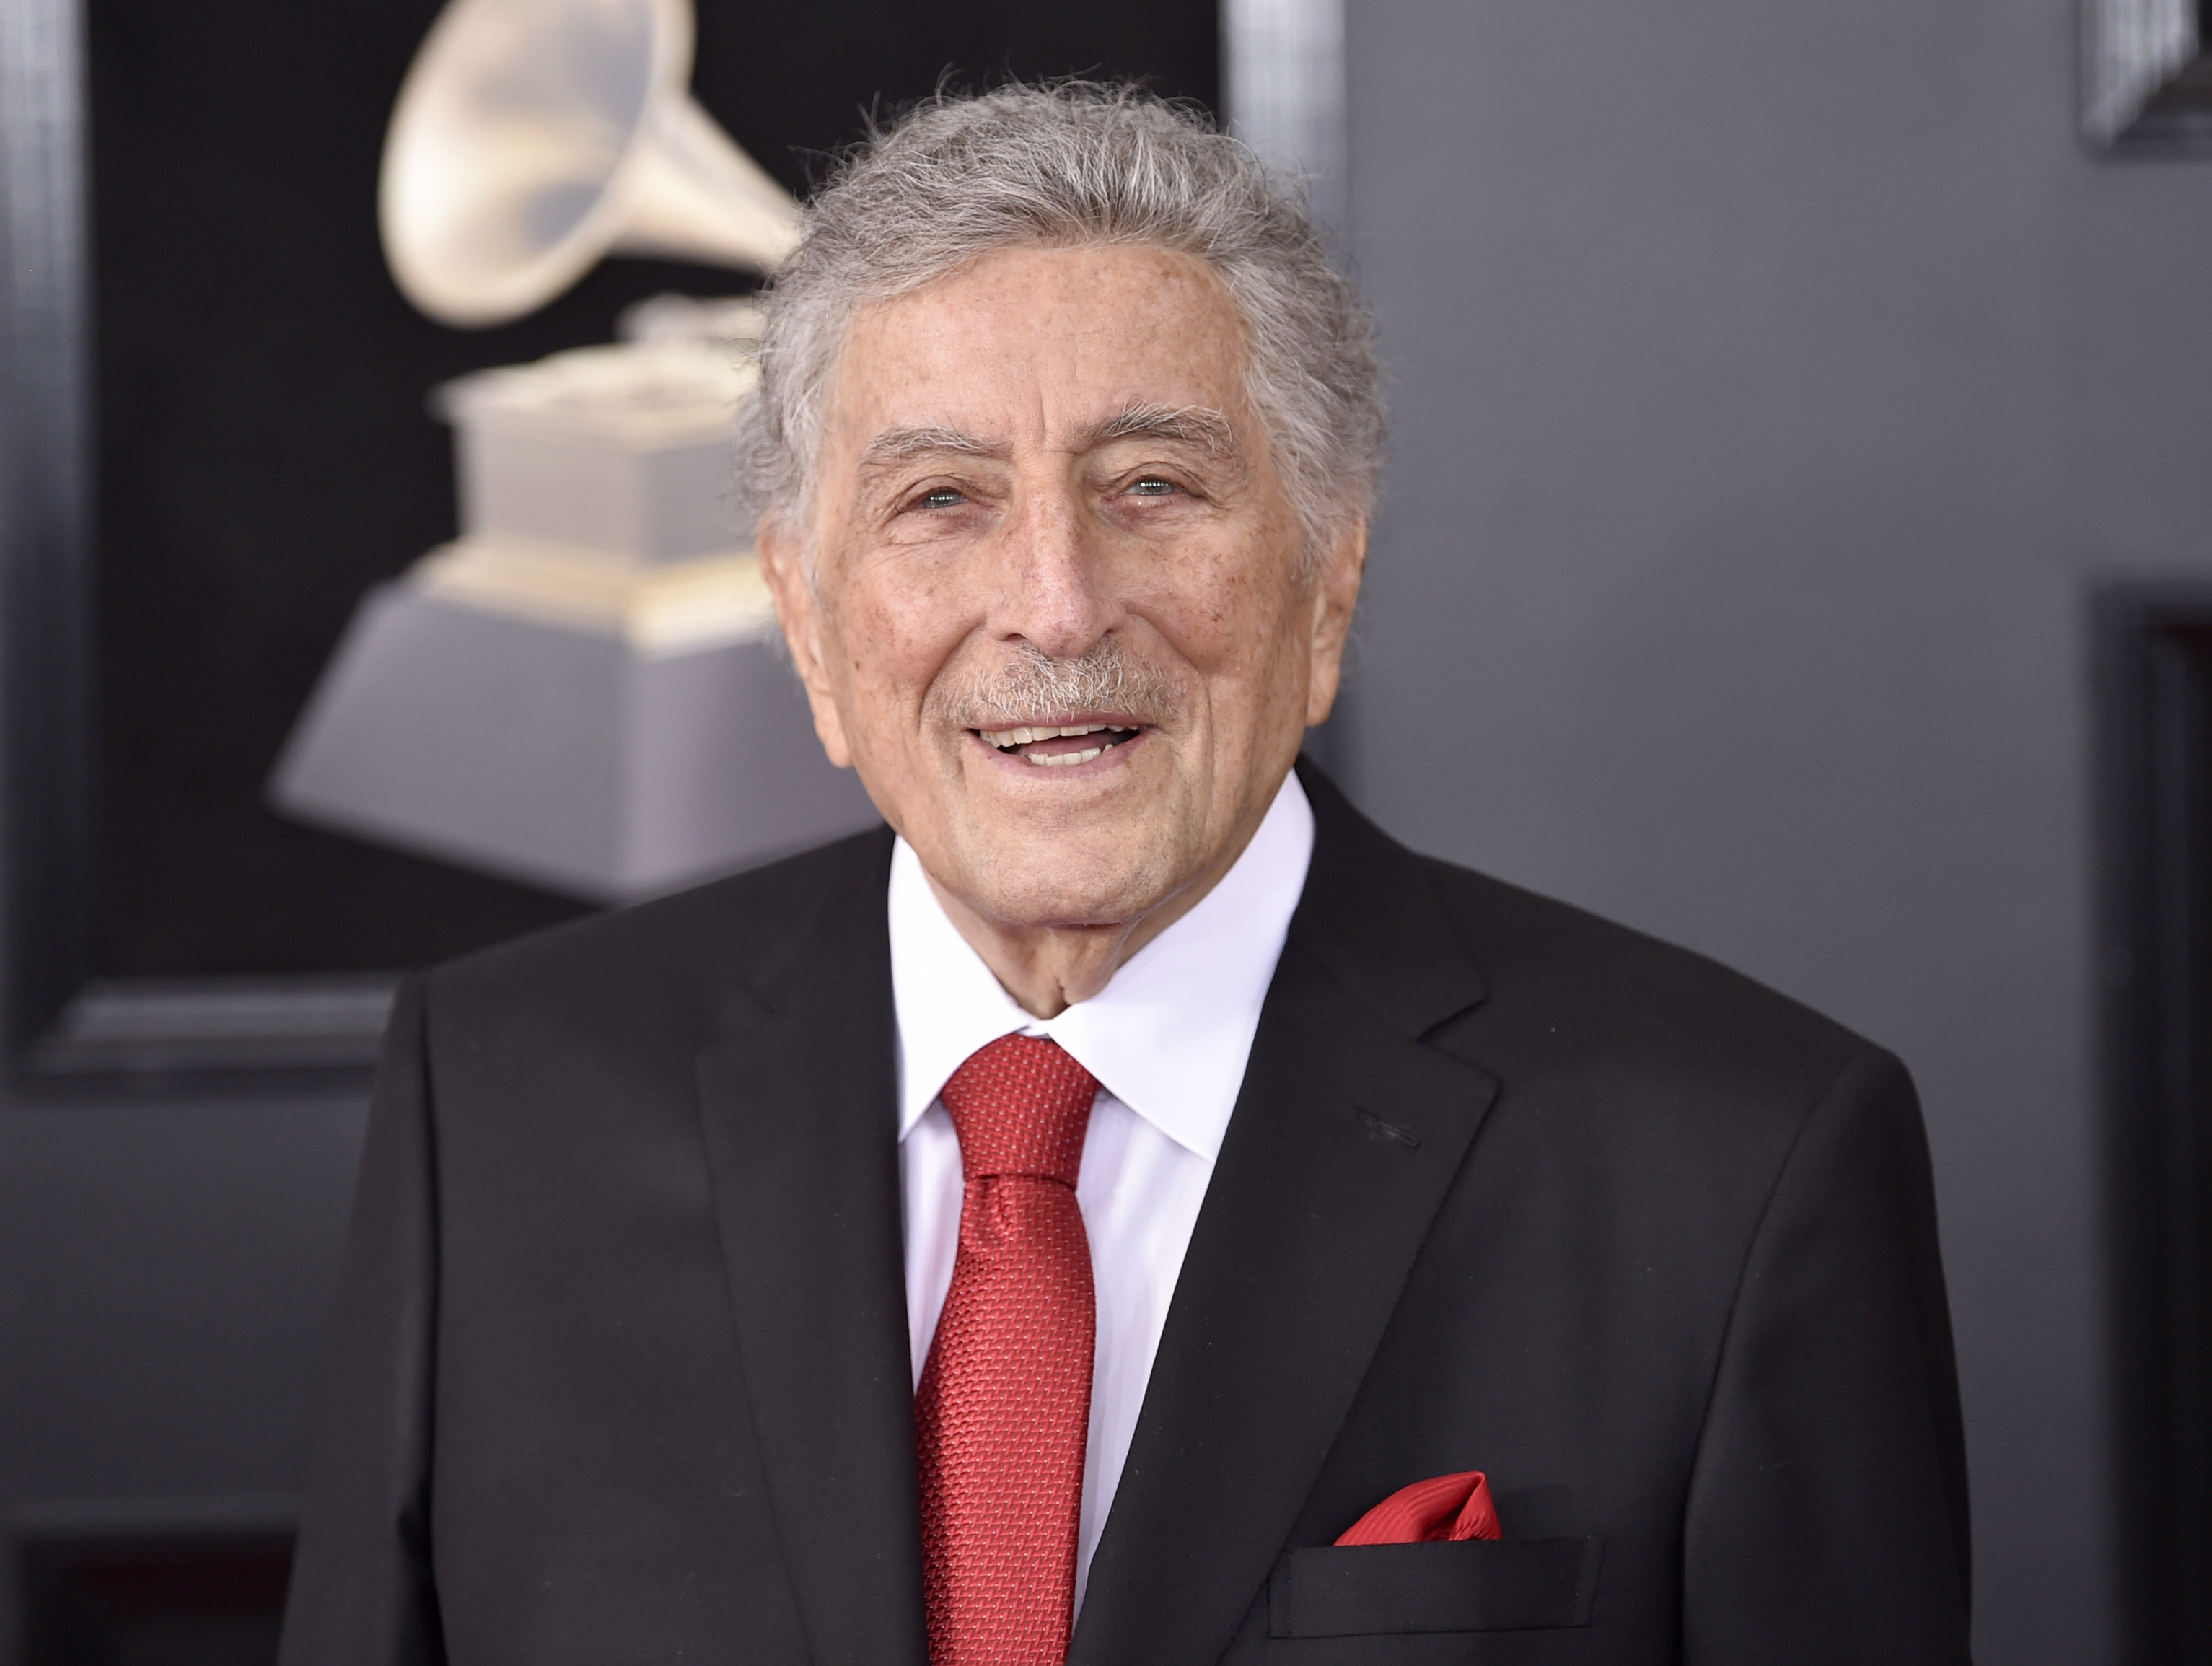 <div class='meta'><div class='origin-logo' data-origin='AP'></div><span class='caption-text' data-credit='Evan Agostini/Invision/AP'>Tony Bennett arrives at the 60th annual Grammy Awards at Madison Square Garden on Sunday, Jan. 28, 2018, in New York.</span></div>